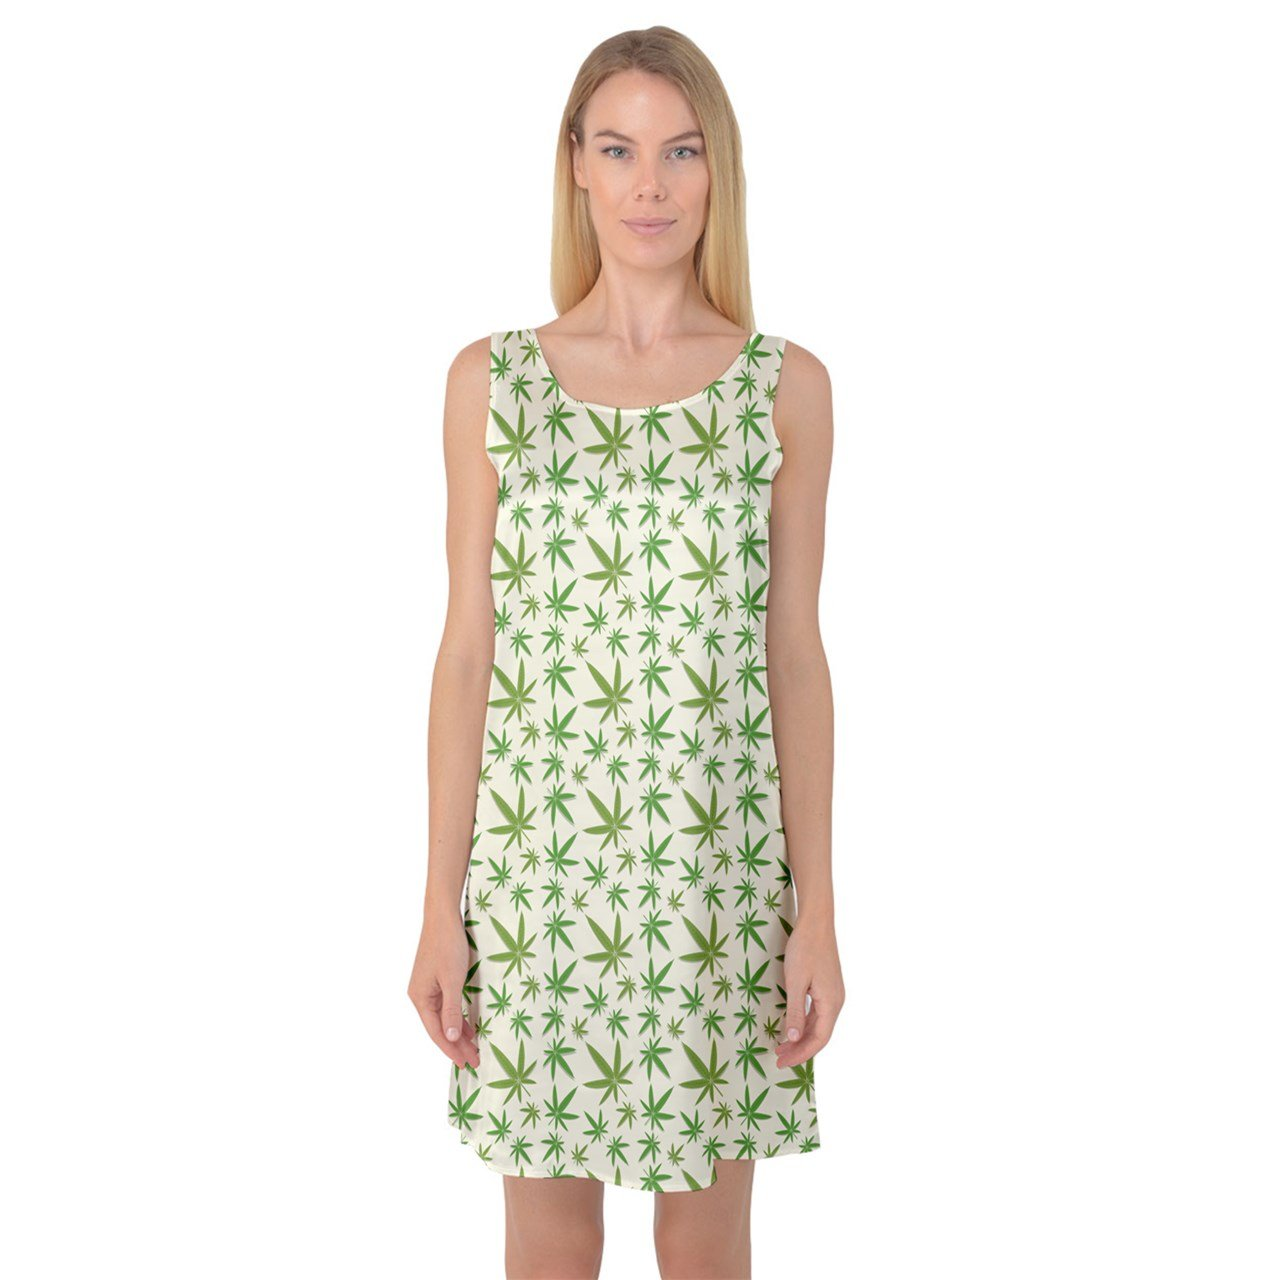 CowCow Womens Green Cannabis Leaves Pattern Sleeveless Satin Nightdress